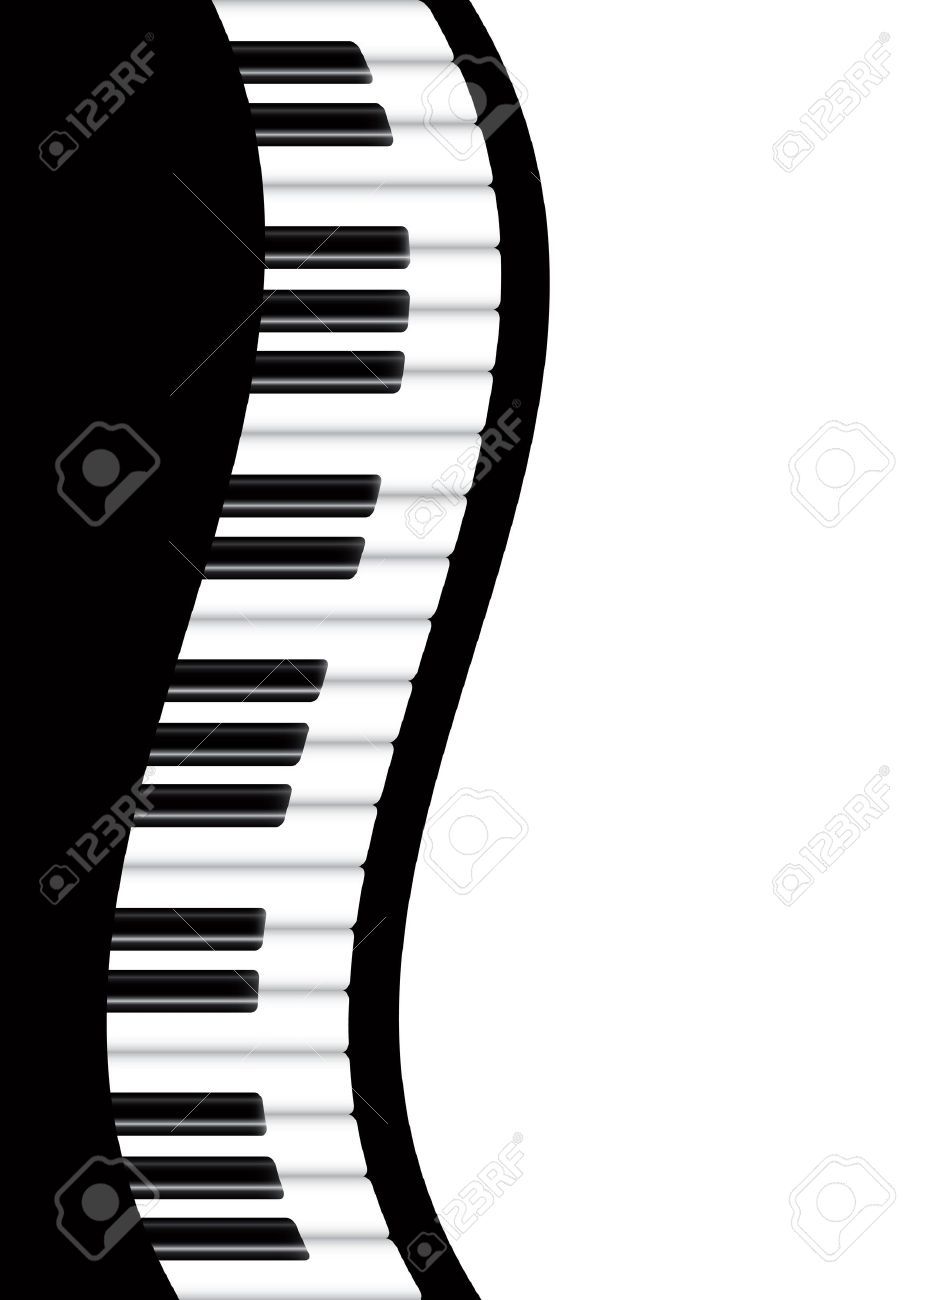 Gong keyboard clipart black and white png Piano Clipart Free Download | Free download best Piano Clipart Free ... png